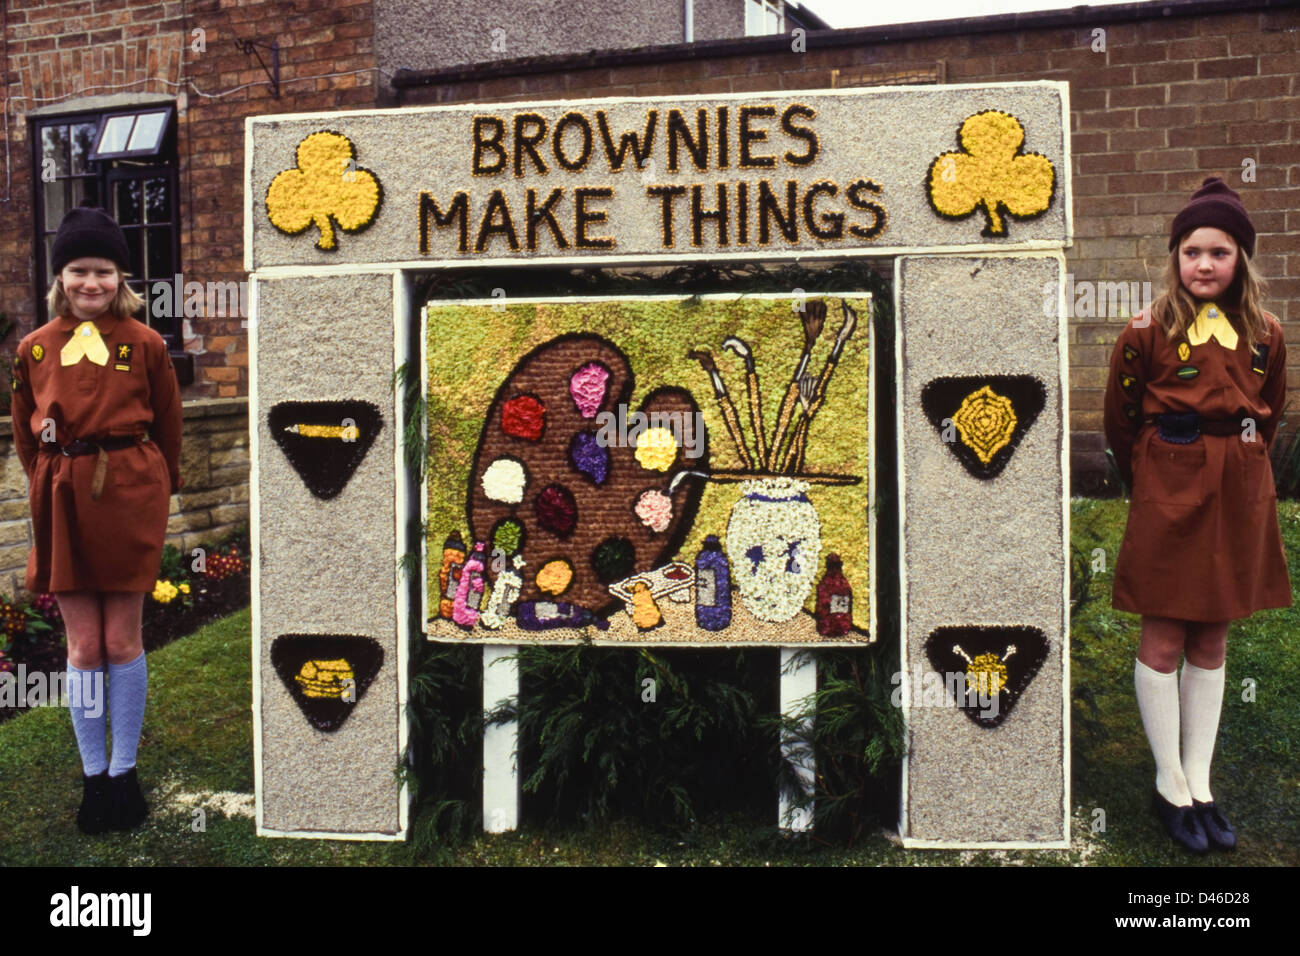 Well Dressing at Etwall Derbyshire England UK display entitled 'Brownies Make Things' by the local Brownies - Stock Image